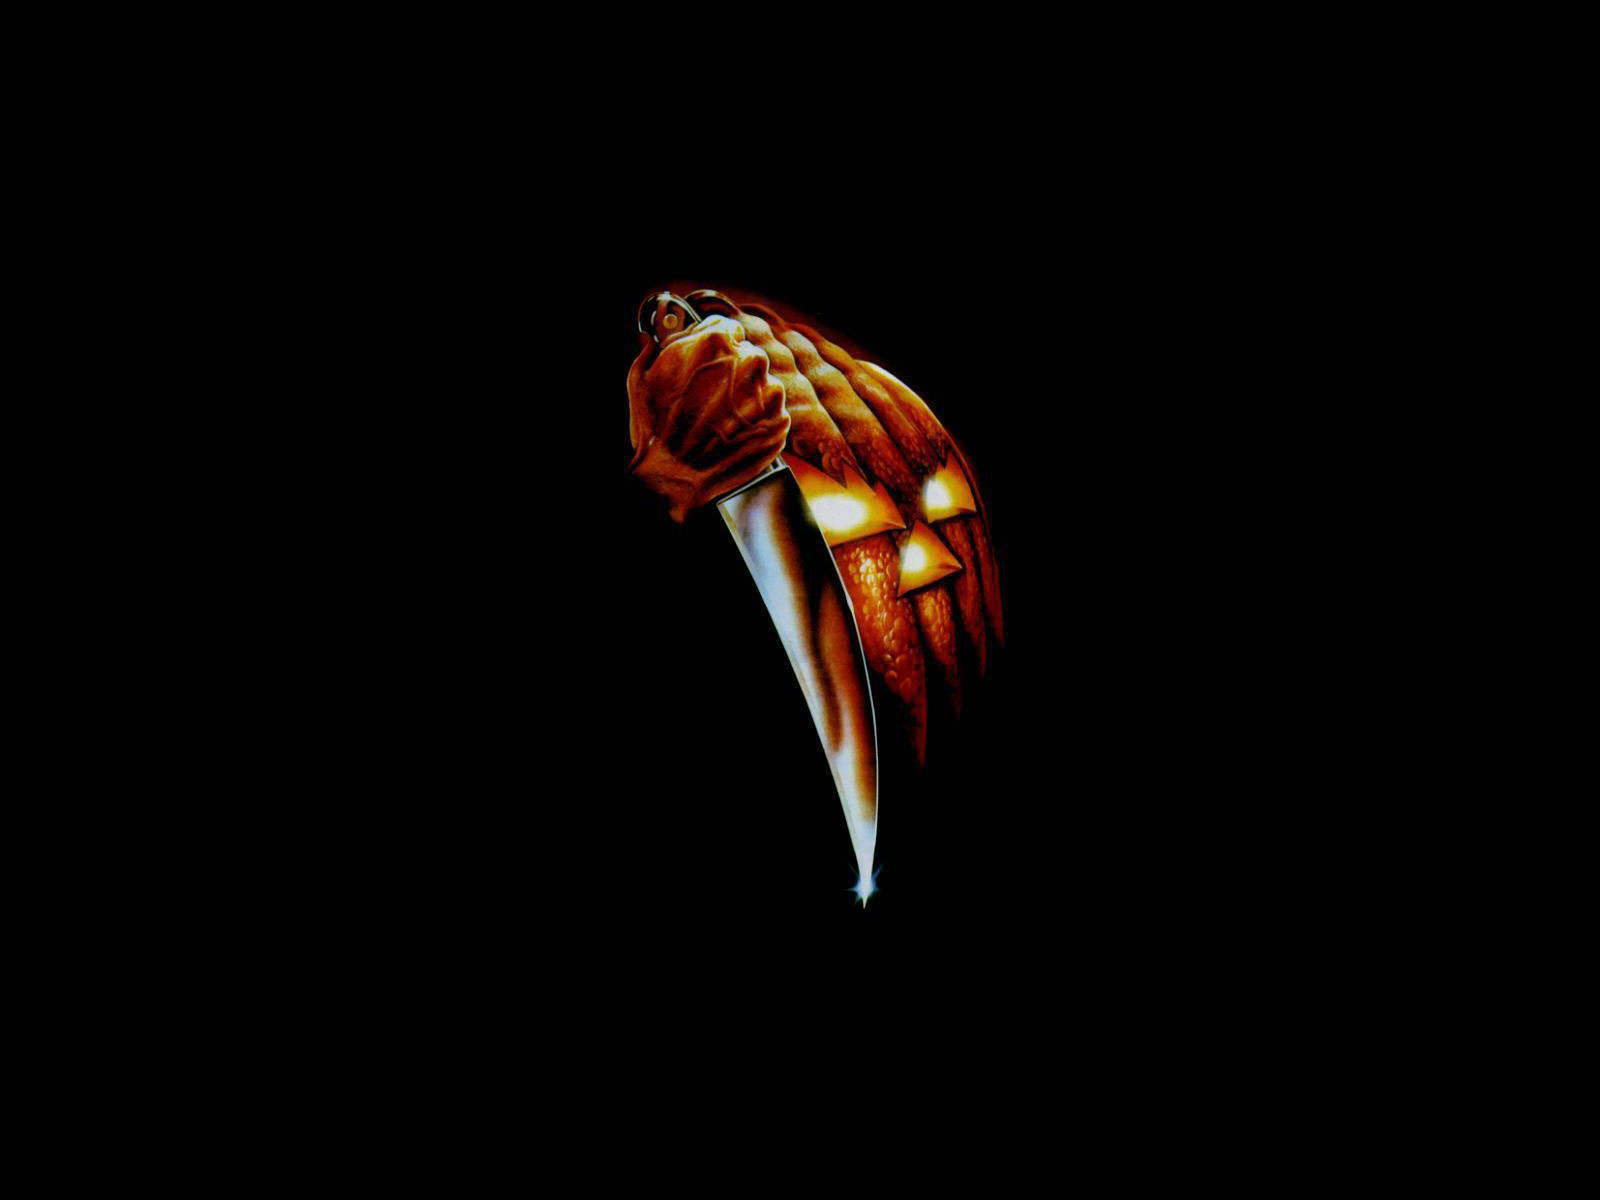 http://2.bp.blogspot.com/_J9PlRvGGXS8/SwswatkqOnI/AAAAAAAACUU/ssYVHHB0_X8/s1600/halloween-movie-wallpaper-3.jpg